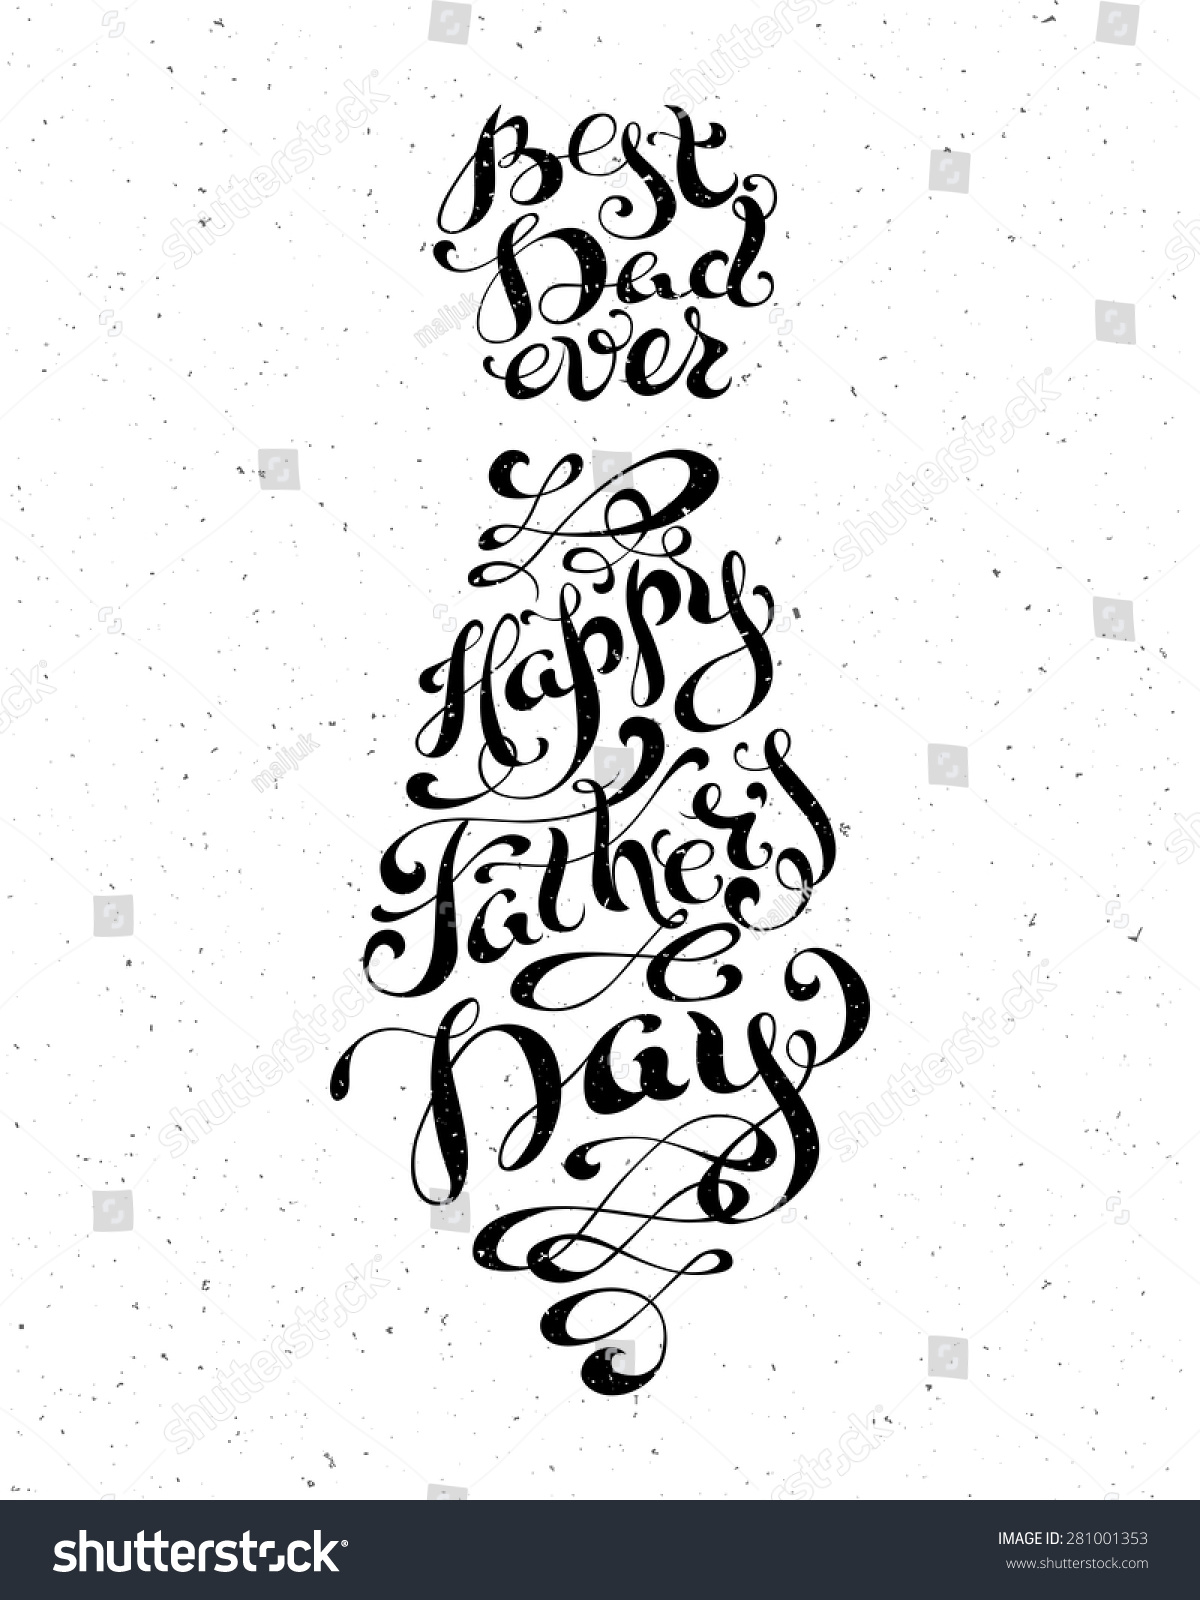 Best dad ever happy fathers day stock vector 281001353 shutterstock best dad ever happy fathers day vector isolated typographic design element for greeting cards kristyandbryce Choice Image